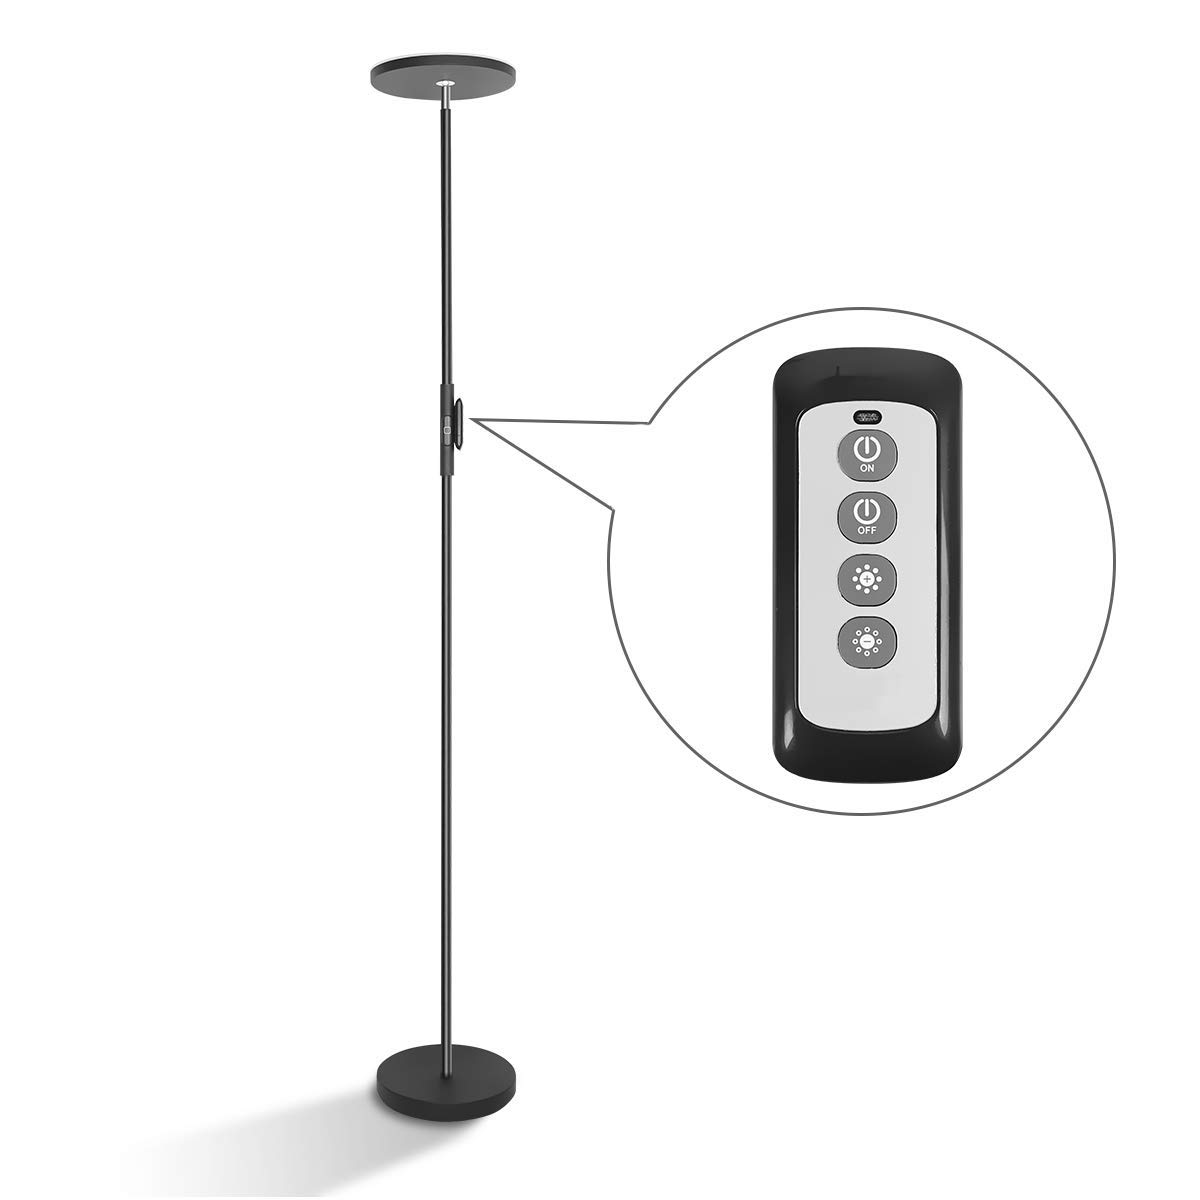 LED Torchiere Floor Lamp 20W with Super Bright Light,Adjustable Tall Standing Pole Light, Remote Control Uplight Floor Lamp for Reading, Living Room, Bedroom, Office (Black) by Anbomo